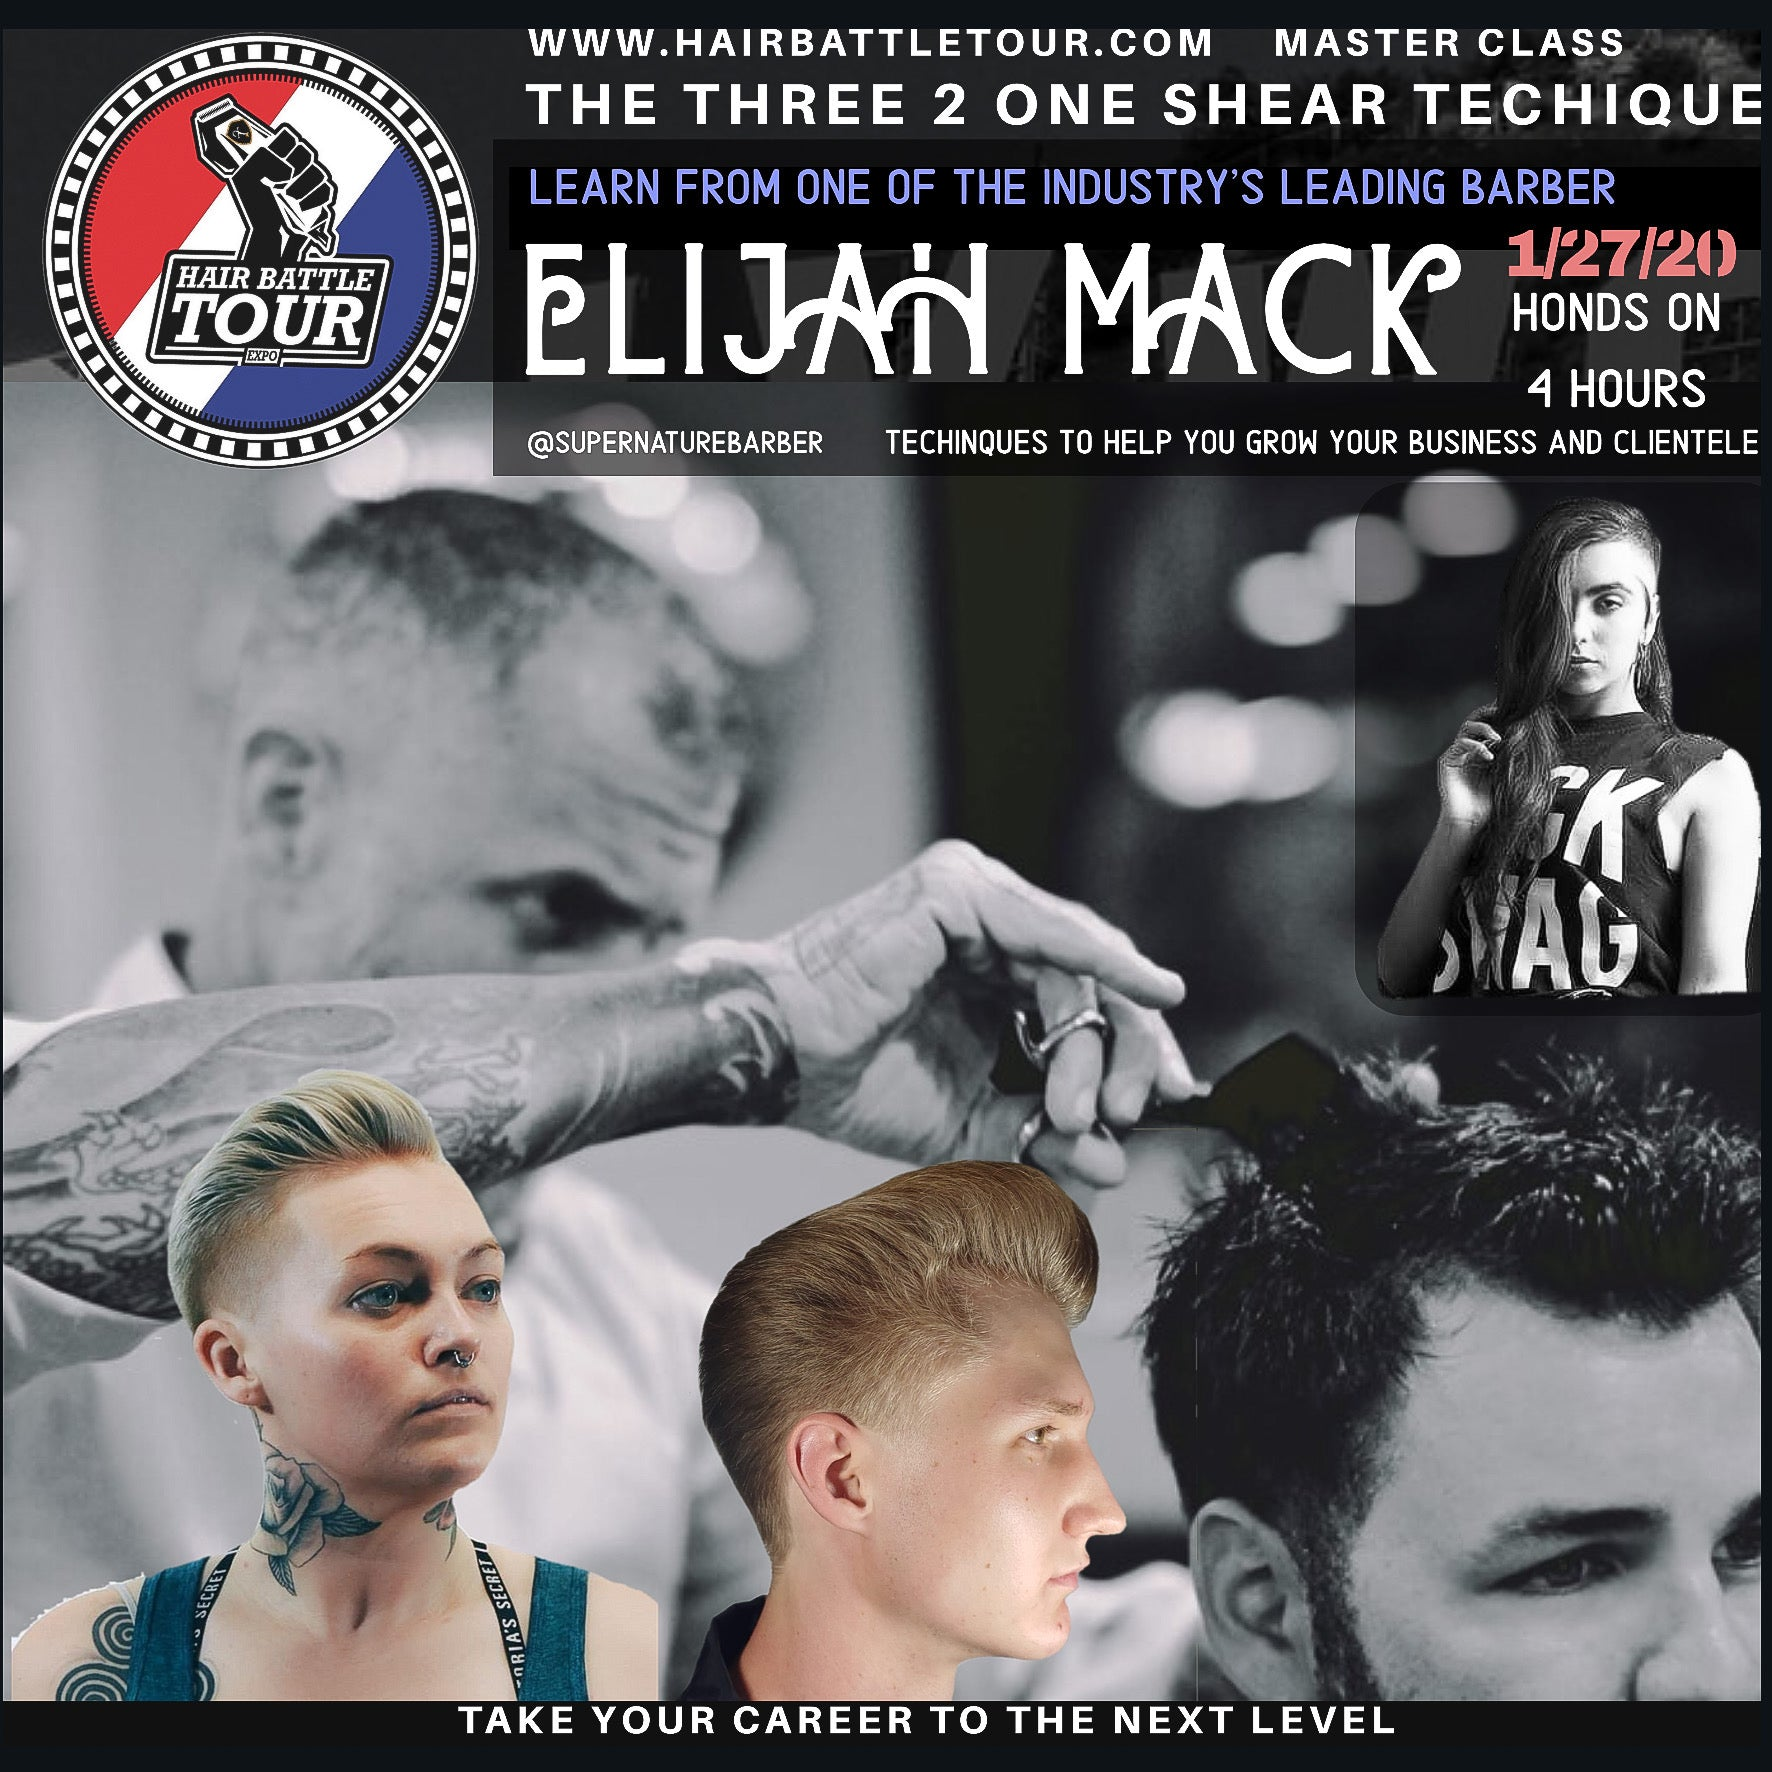 THE THREE 2 ONE SHEAR CUTTING TECHNIQUE BY ELIJAH MACK) 4 HR. LA 1/27/2020 (Free $300 shear with class )